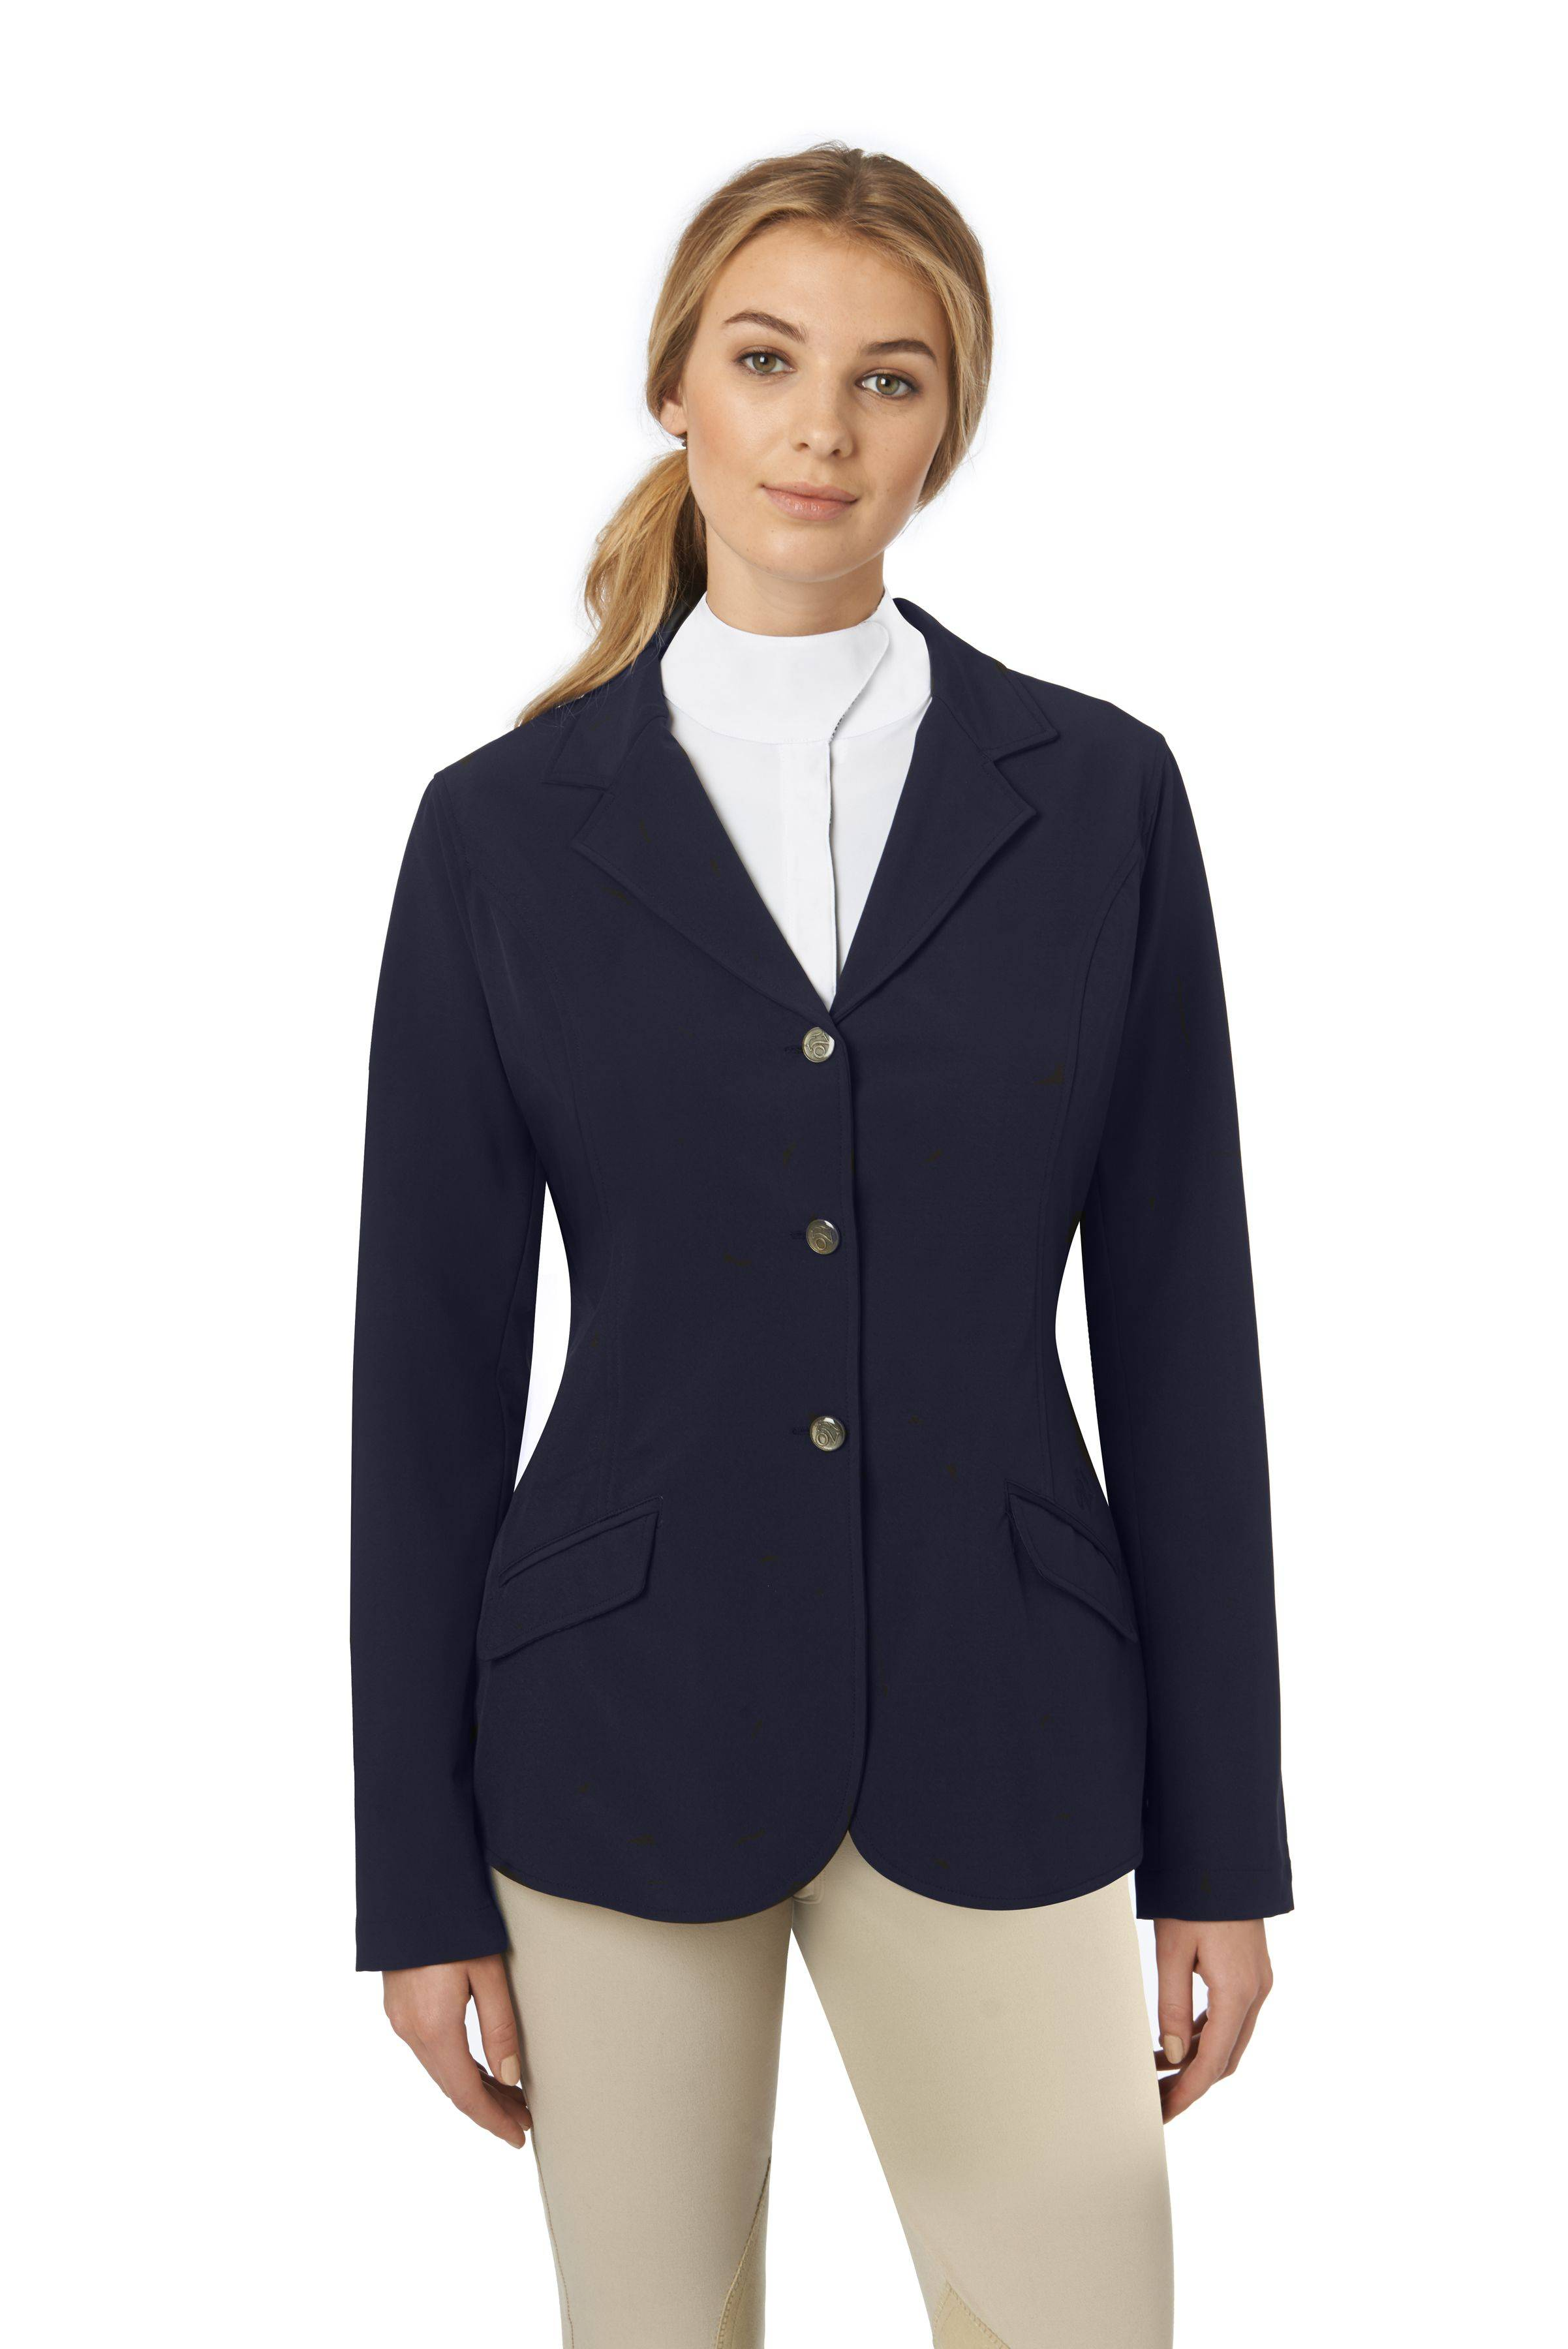 Ovation Rio Show Coat - Ladies